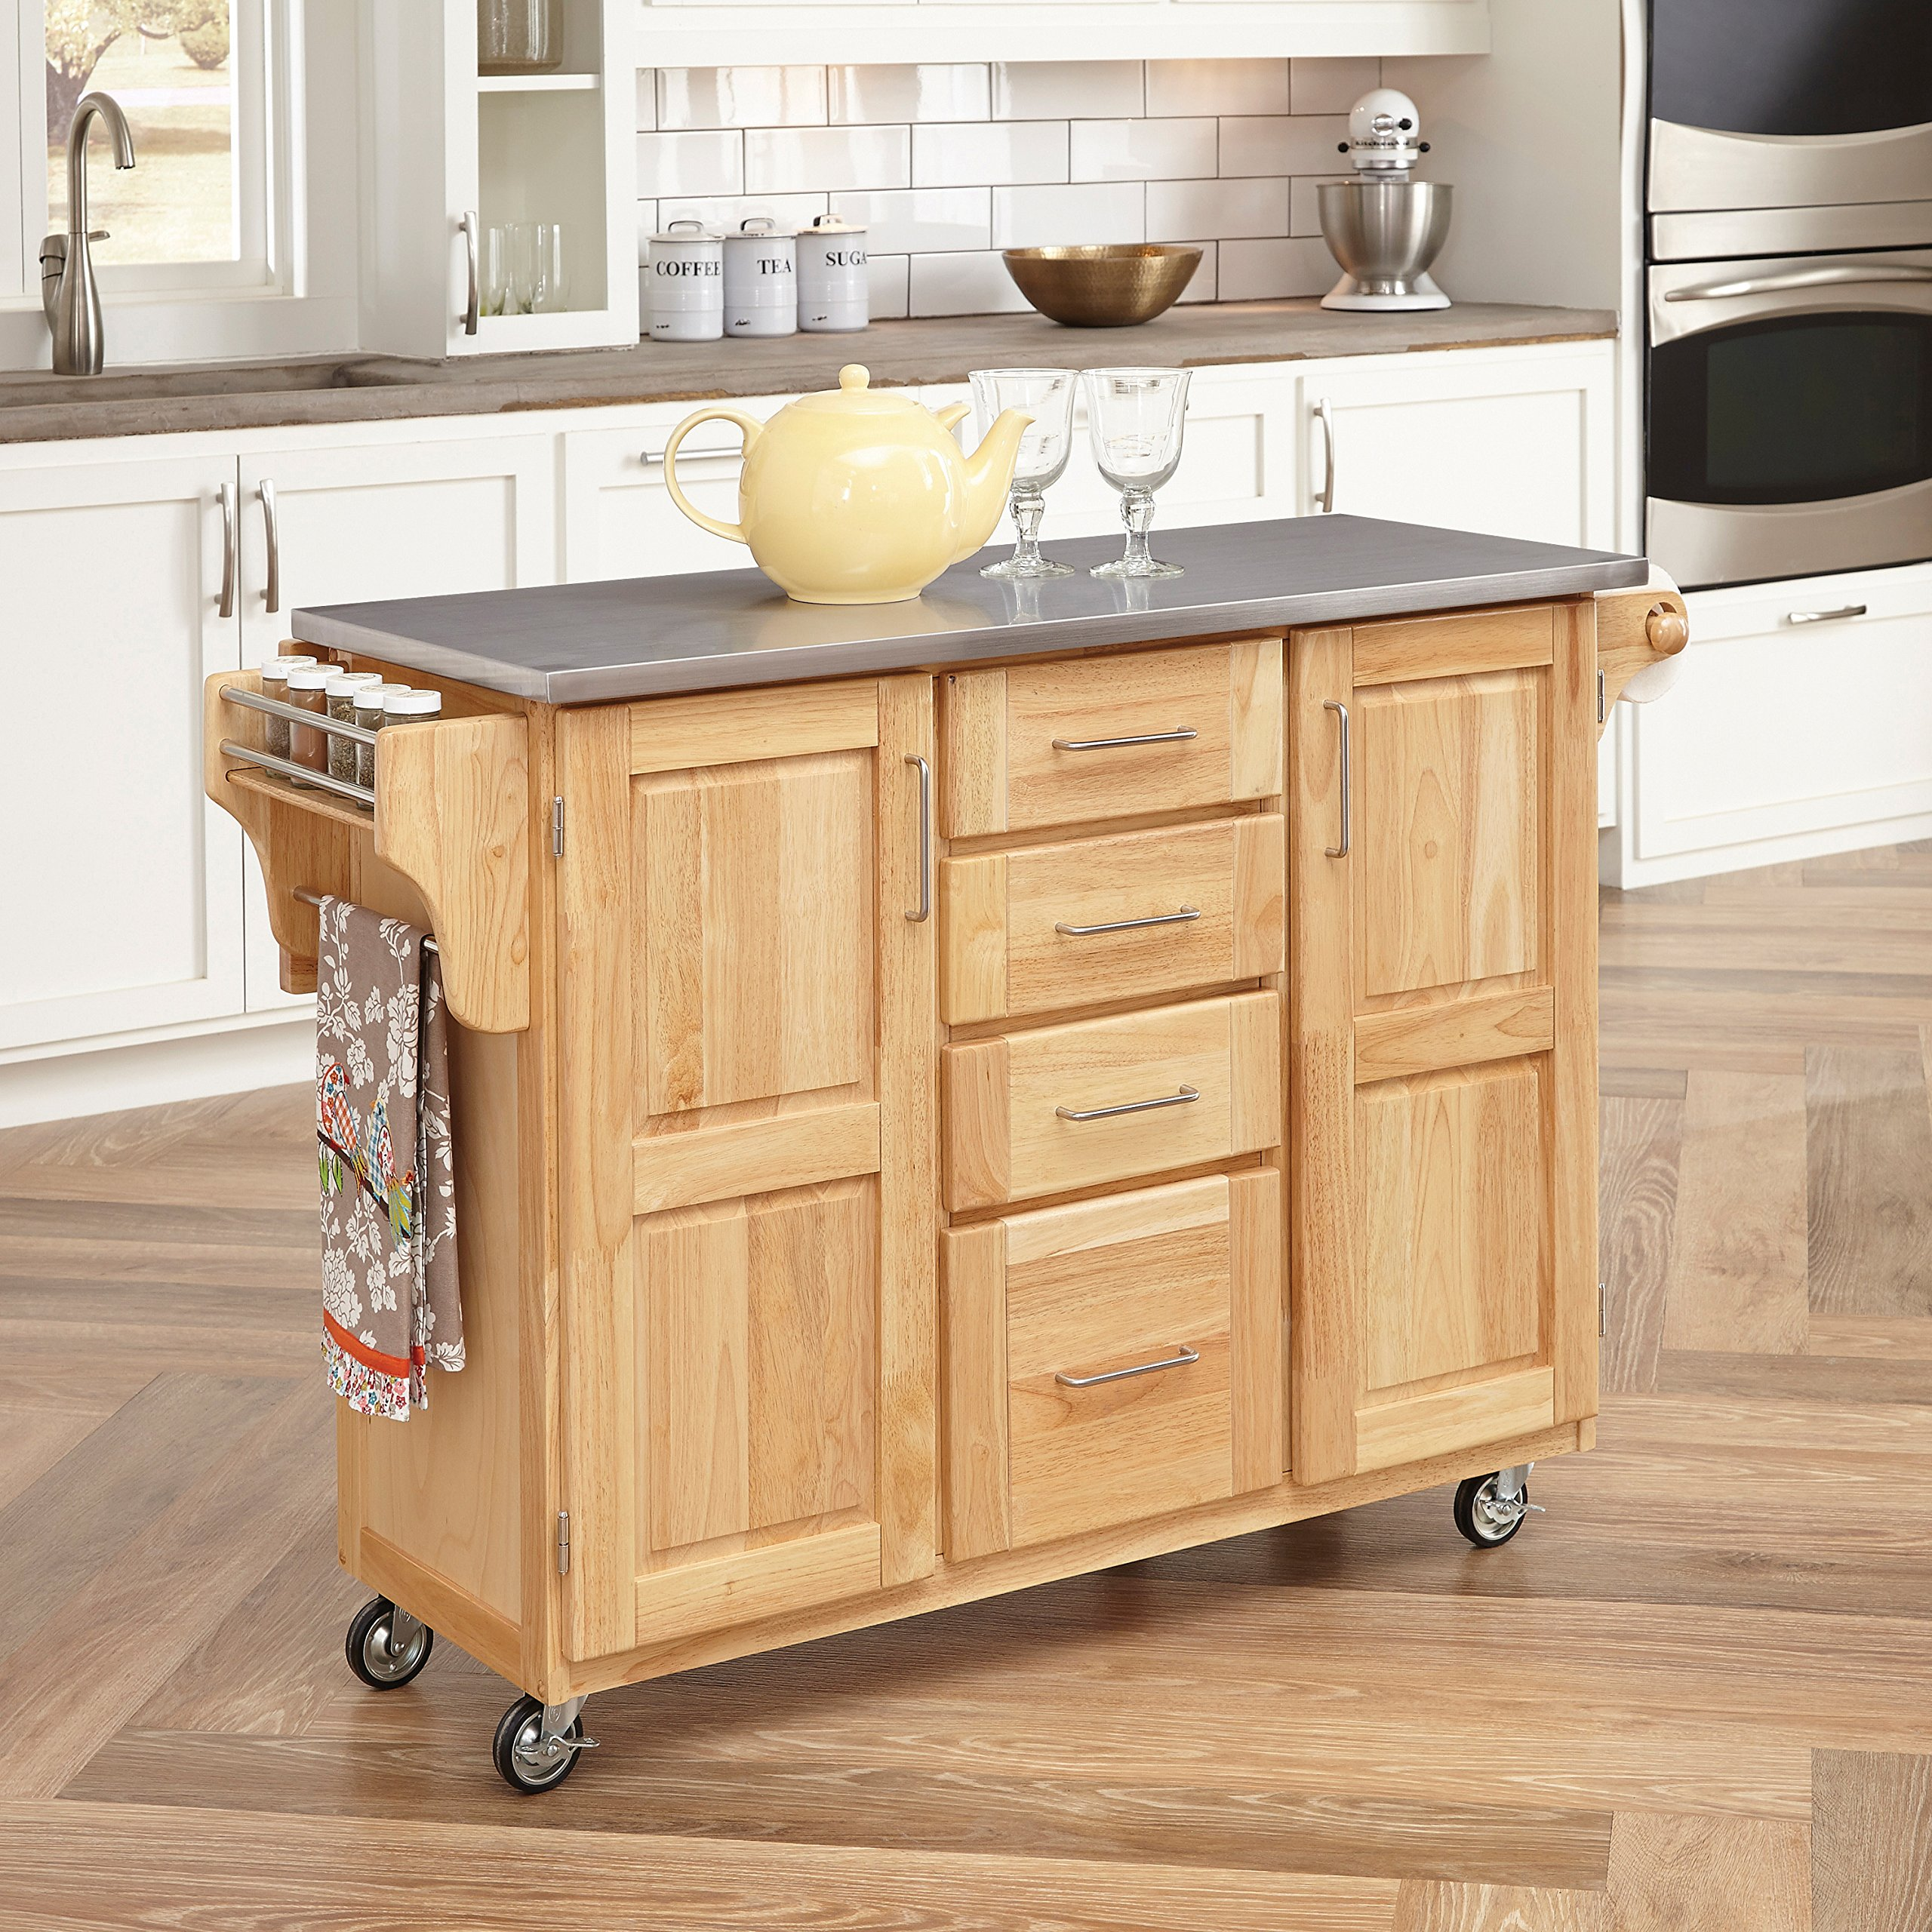 Kitchen Cart with Breakfast bar & Stainless Steel Top by Home Styles by Home Styles